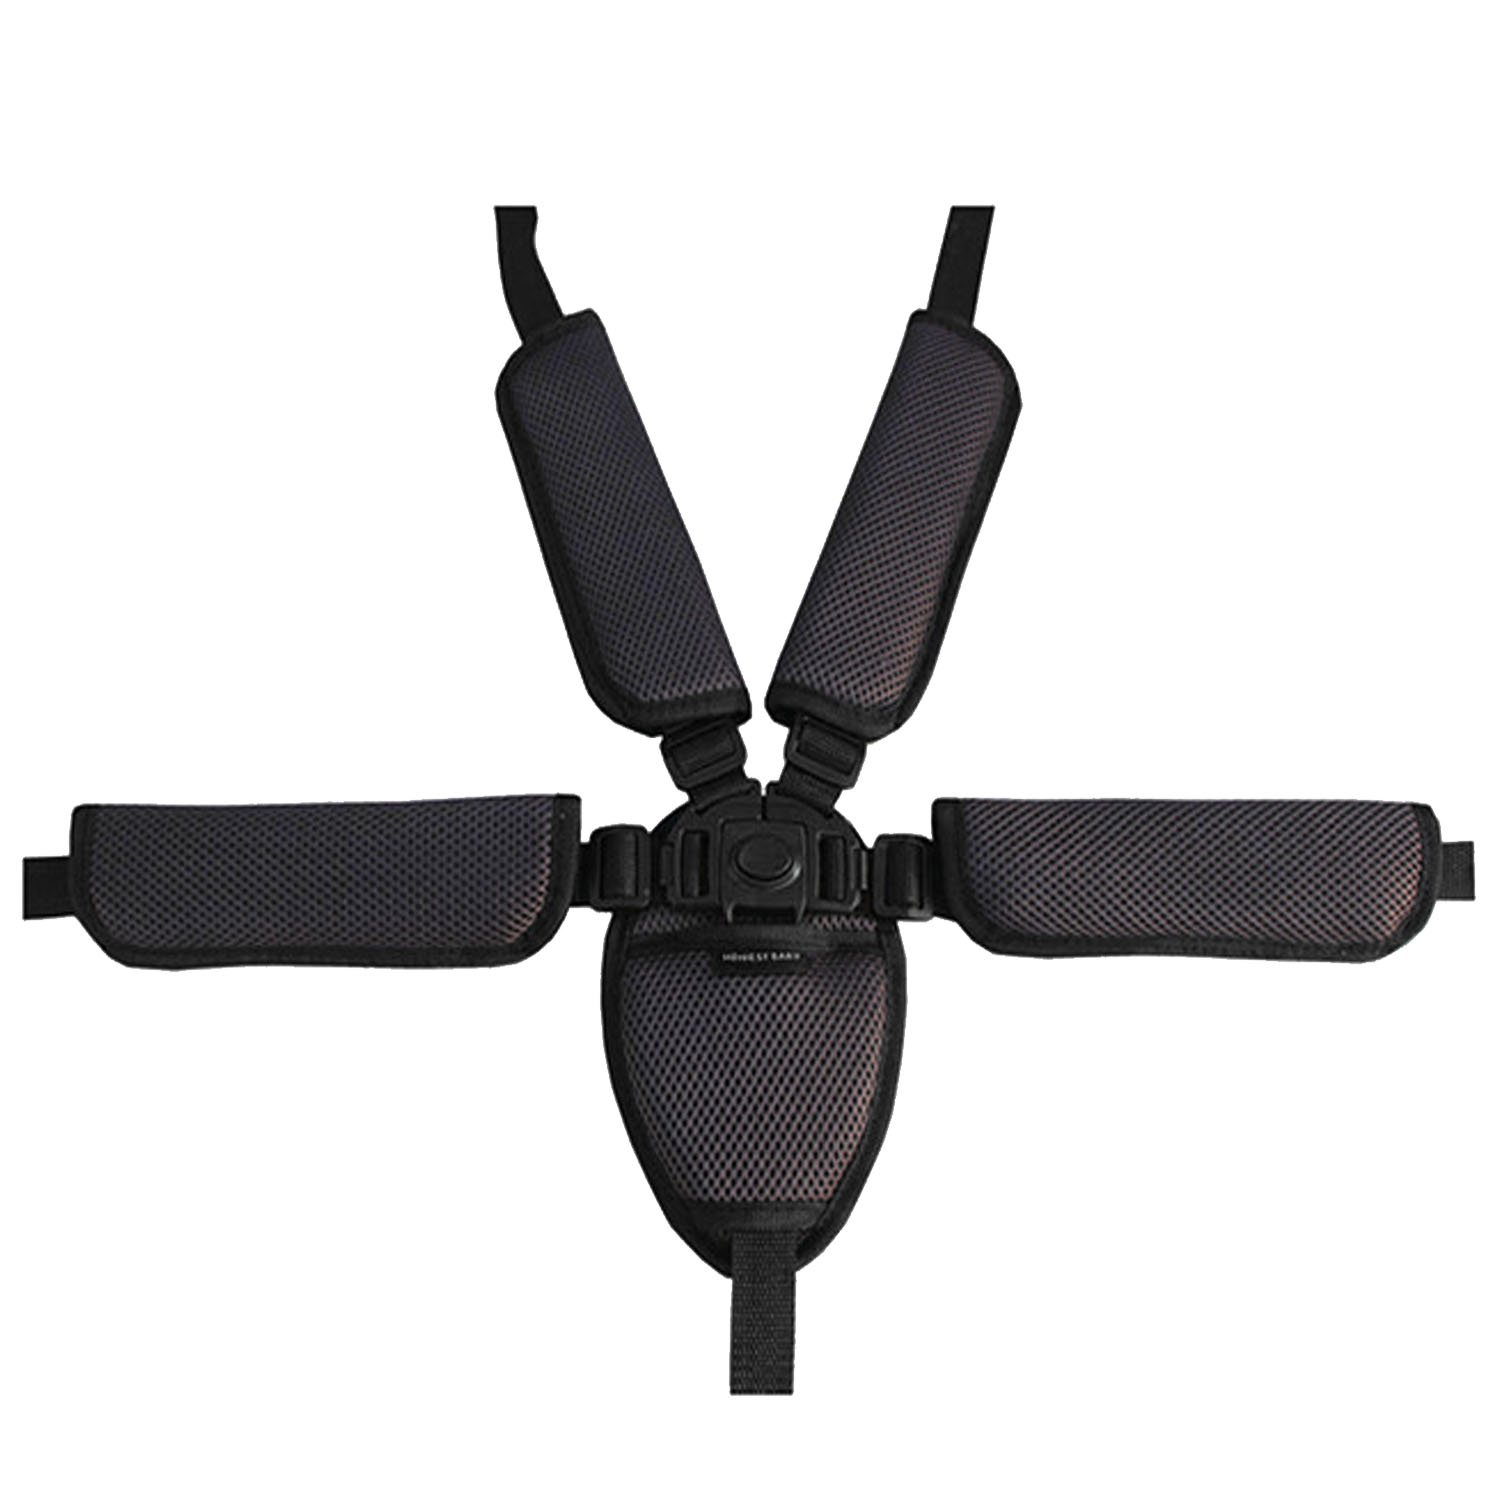 Universal Baby Kid 5 Point Safety Seat Harness Belt Strap for Stroller High Chair Pram Buggy Kid Pushchair Coffee Gosear